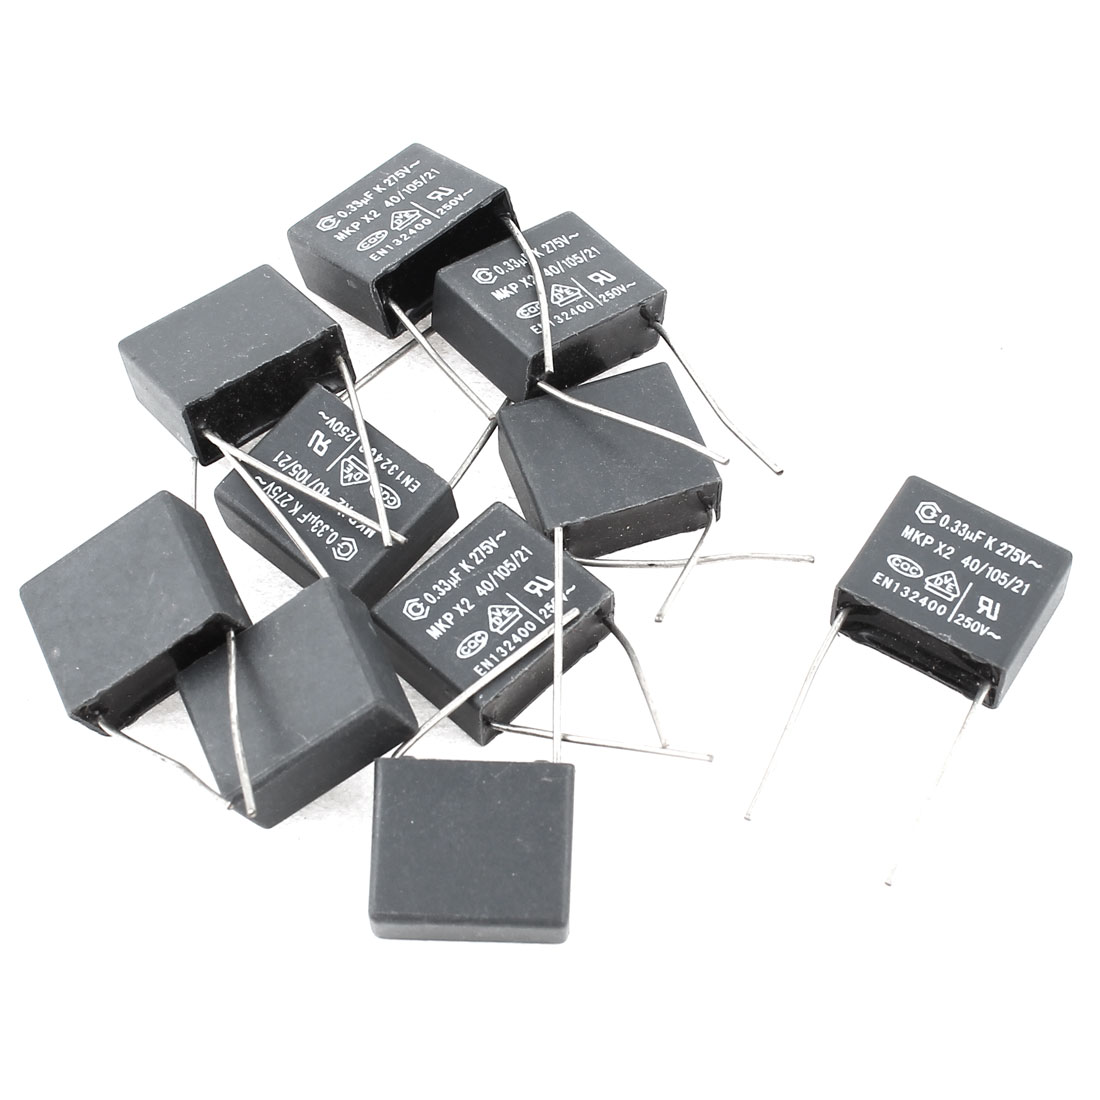 10pcs AC275V 0.33uF Capacitance Two Axial Leads Polyester Film Capacitors